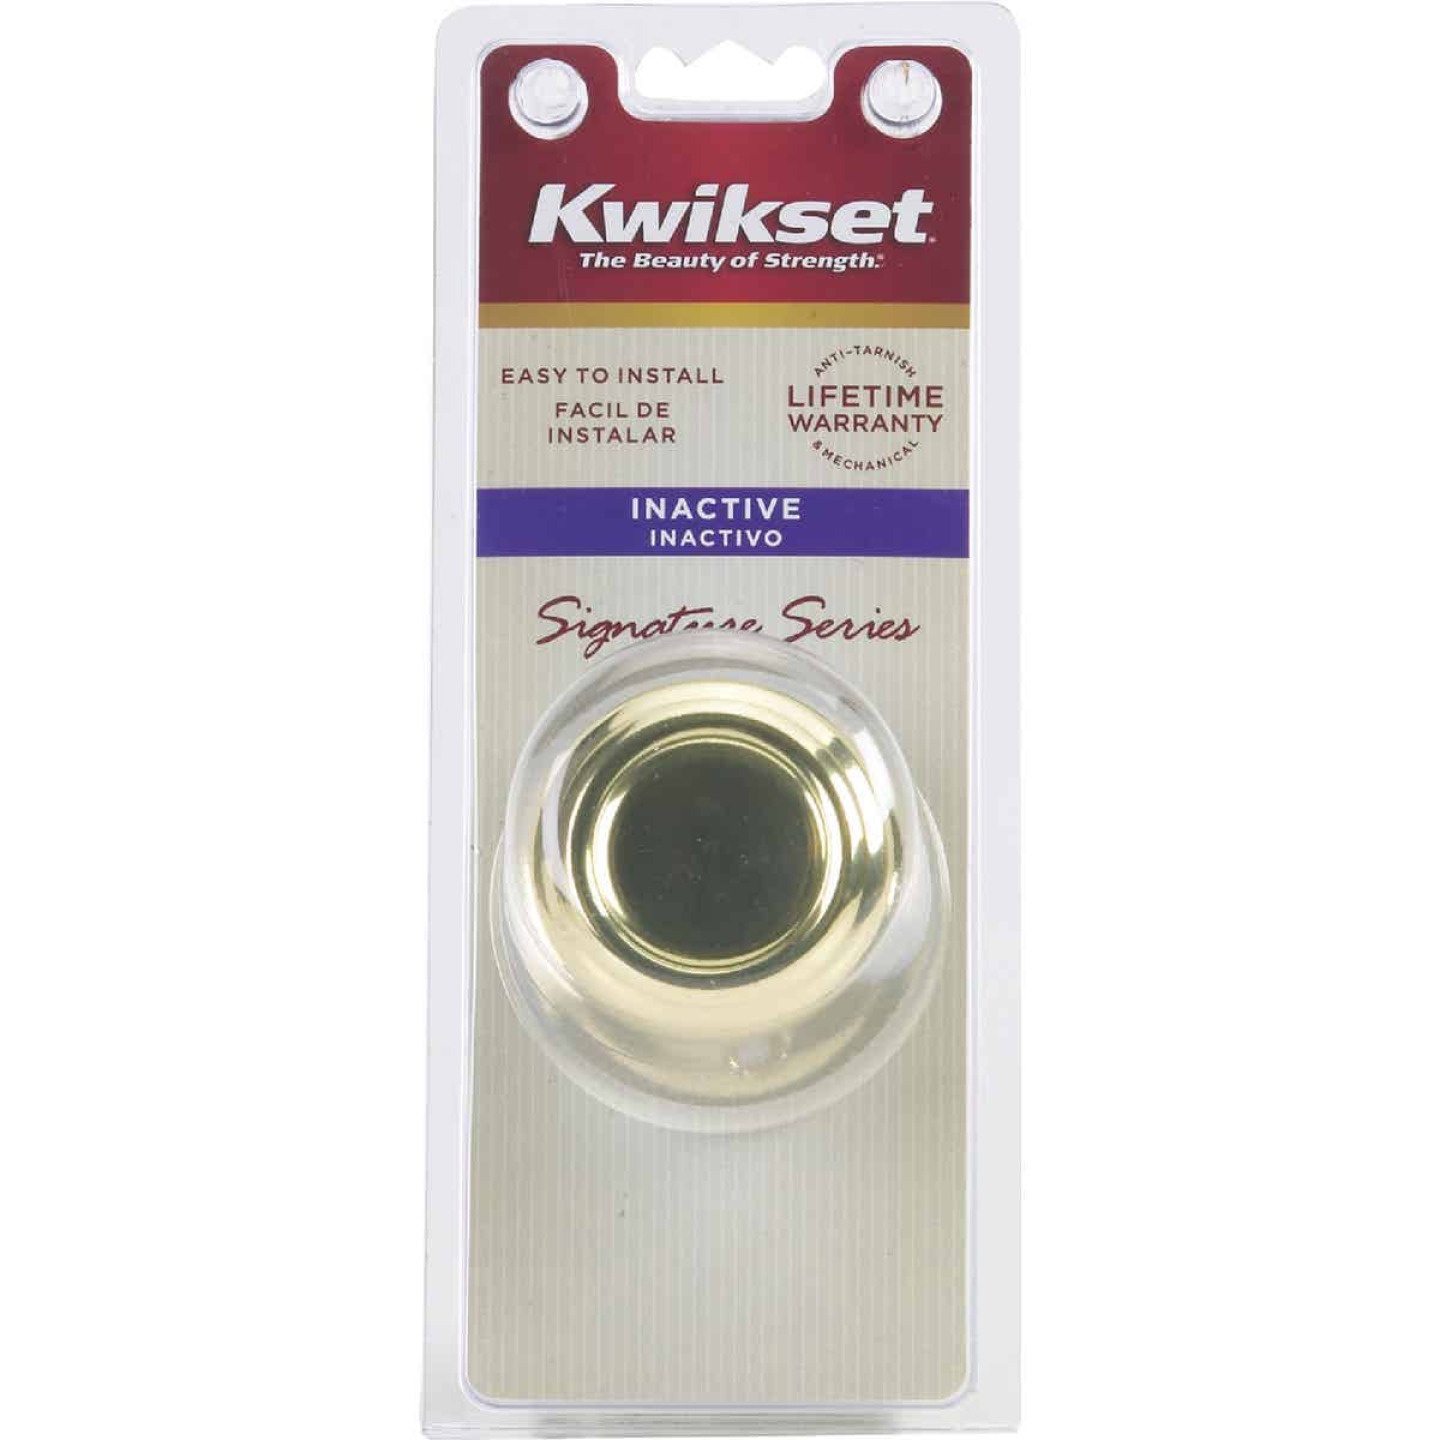 Kwikset Signature Series Polished Brass Cameron Dummy Door Knob Image 2